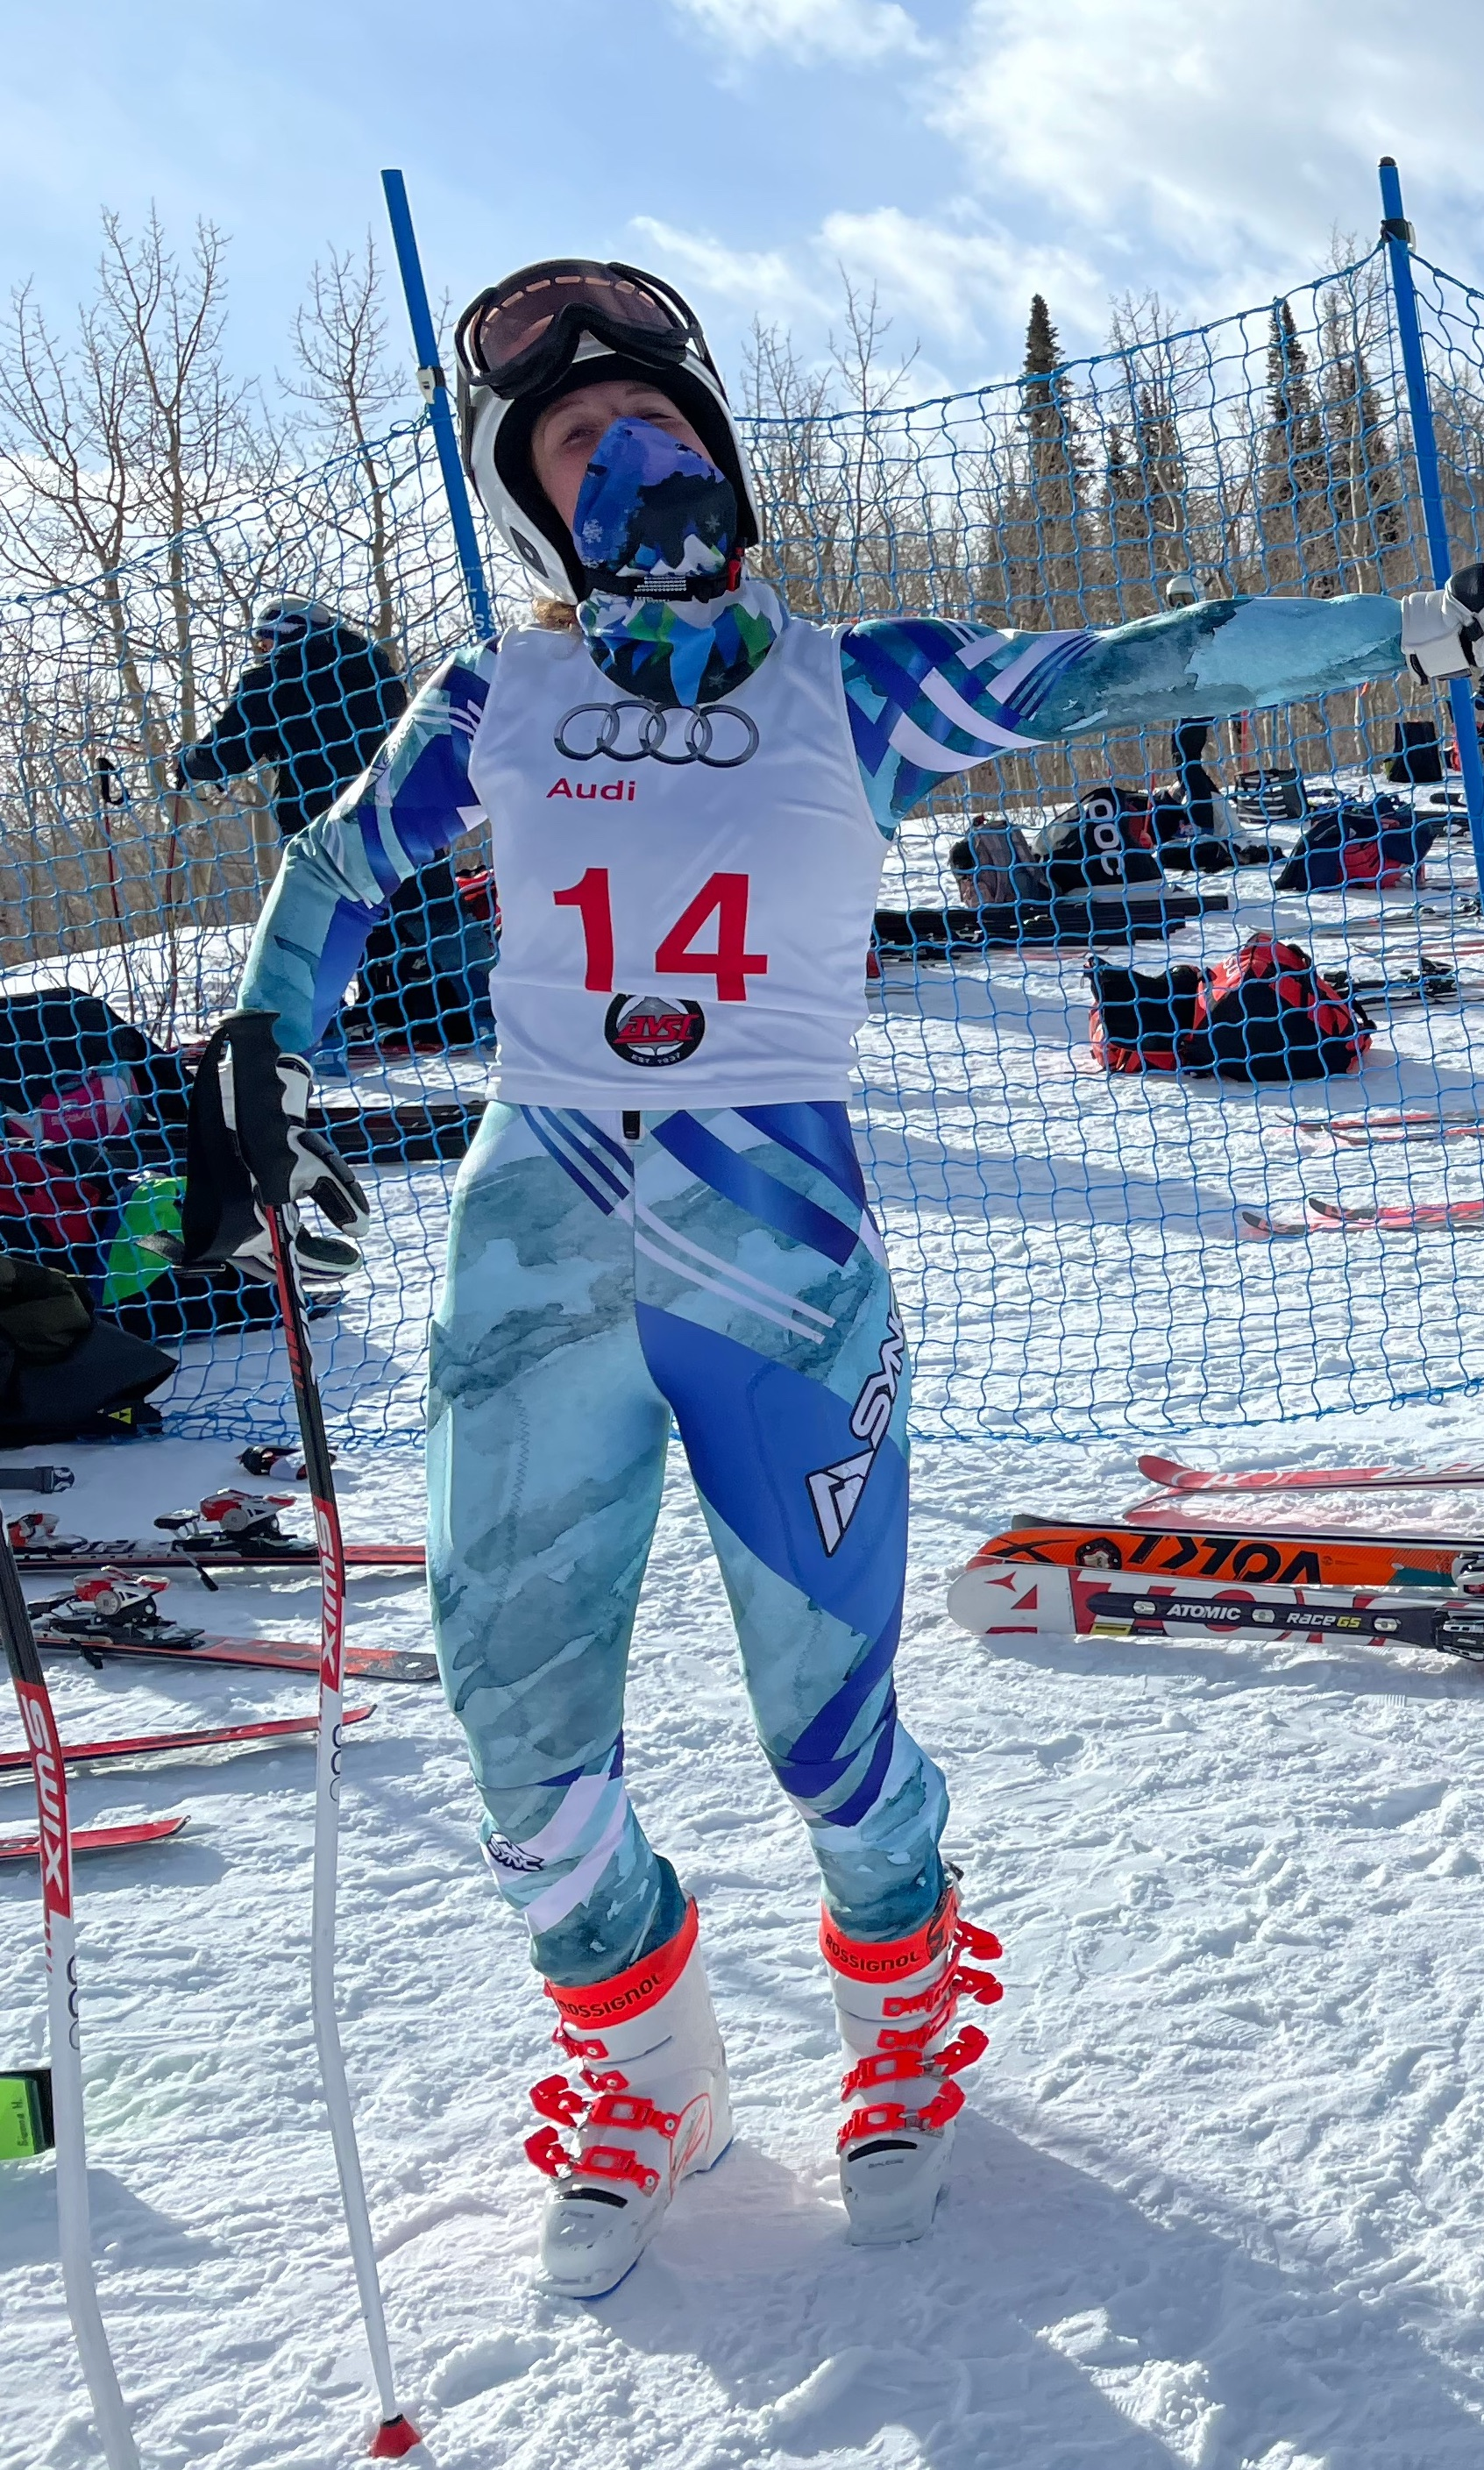 Ella Snyder at the start in Aspen Alpine competition copy.jpg